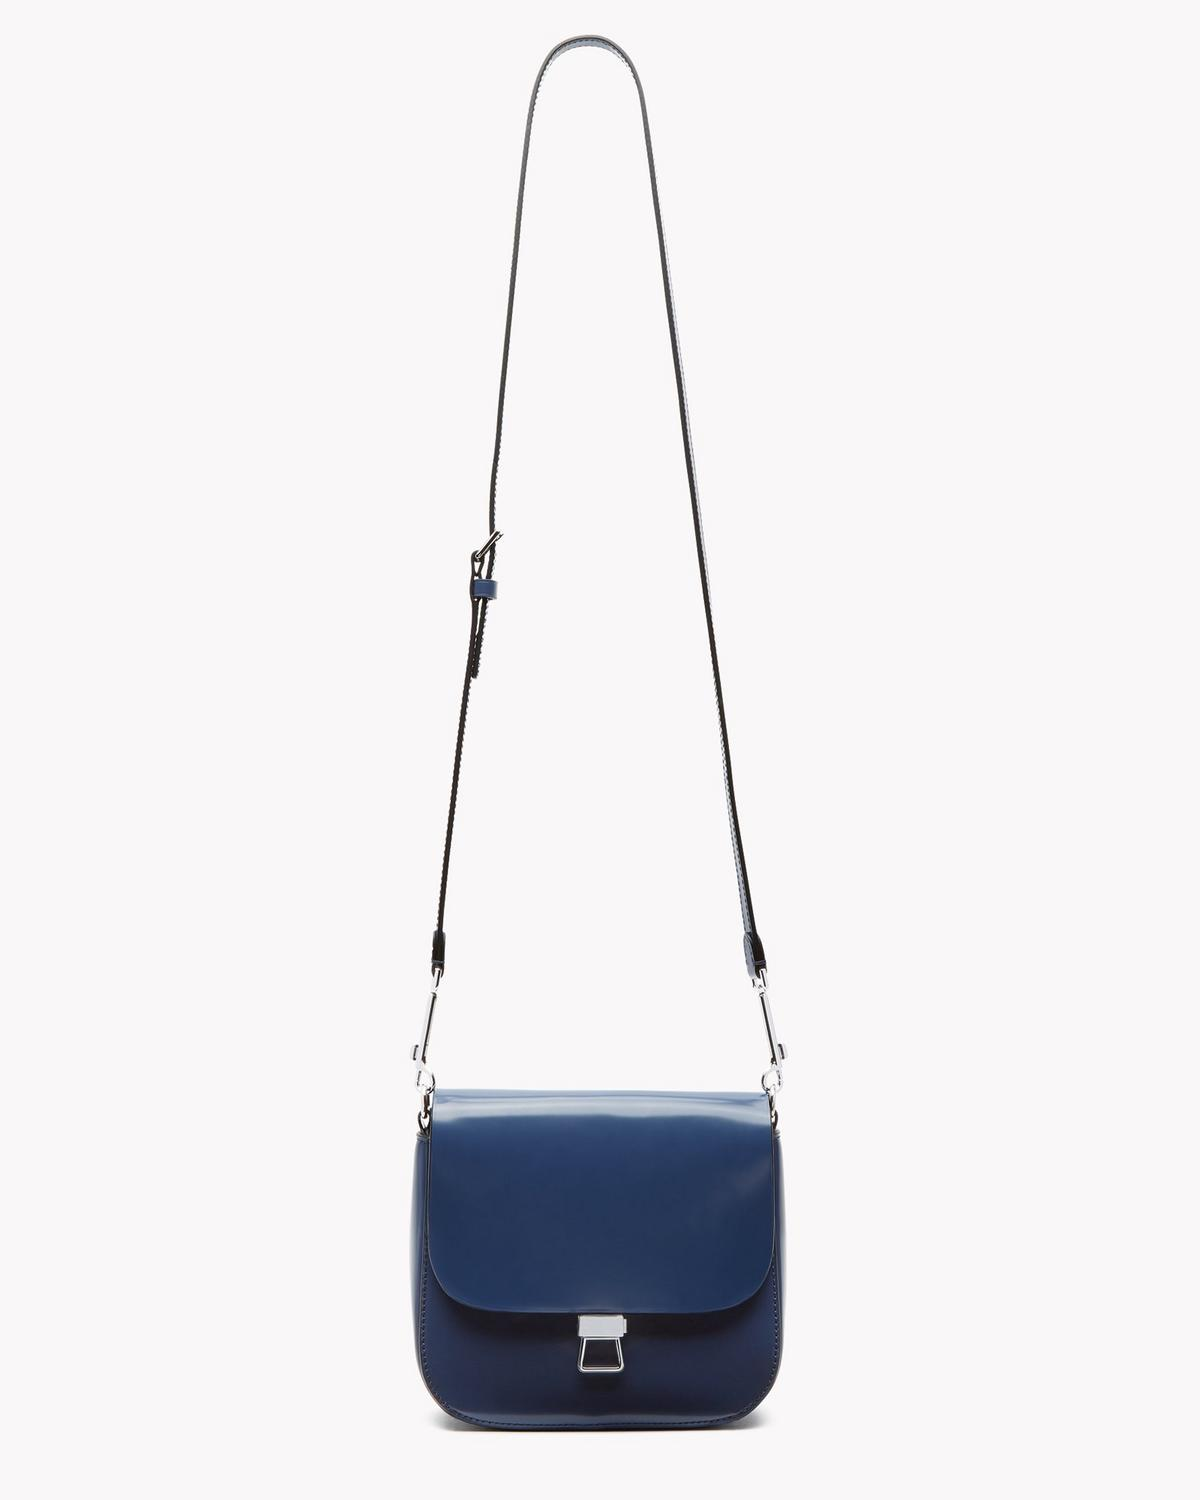 Perry Saddle Bag in Shiny Leather